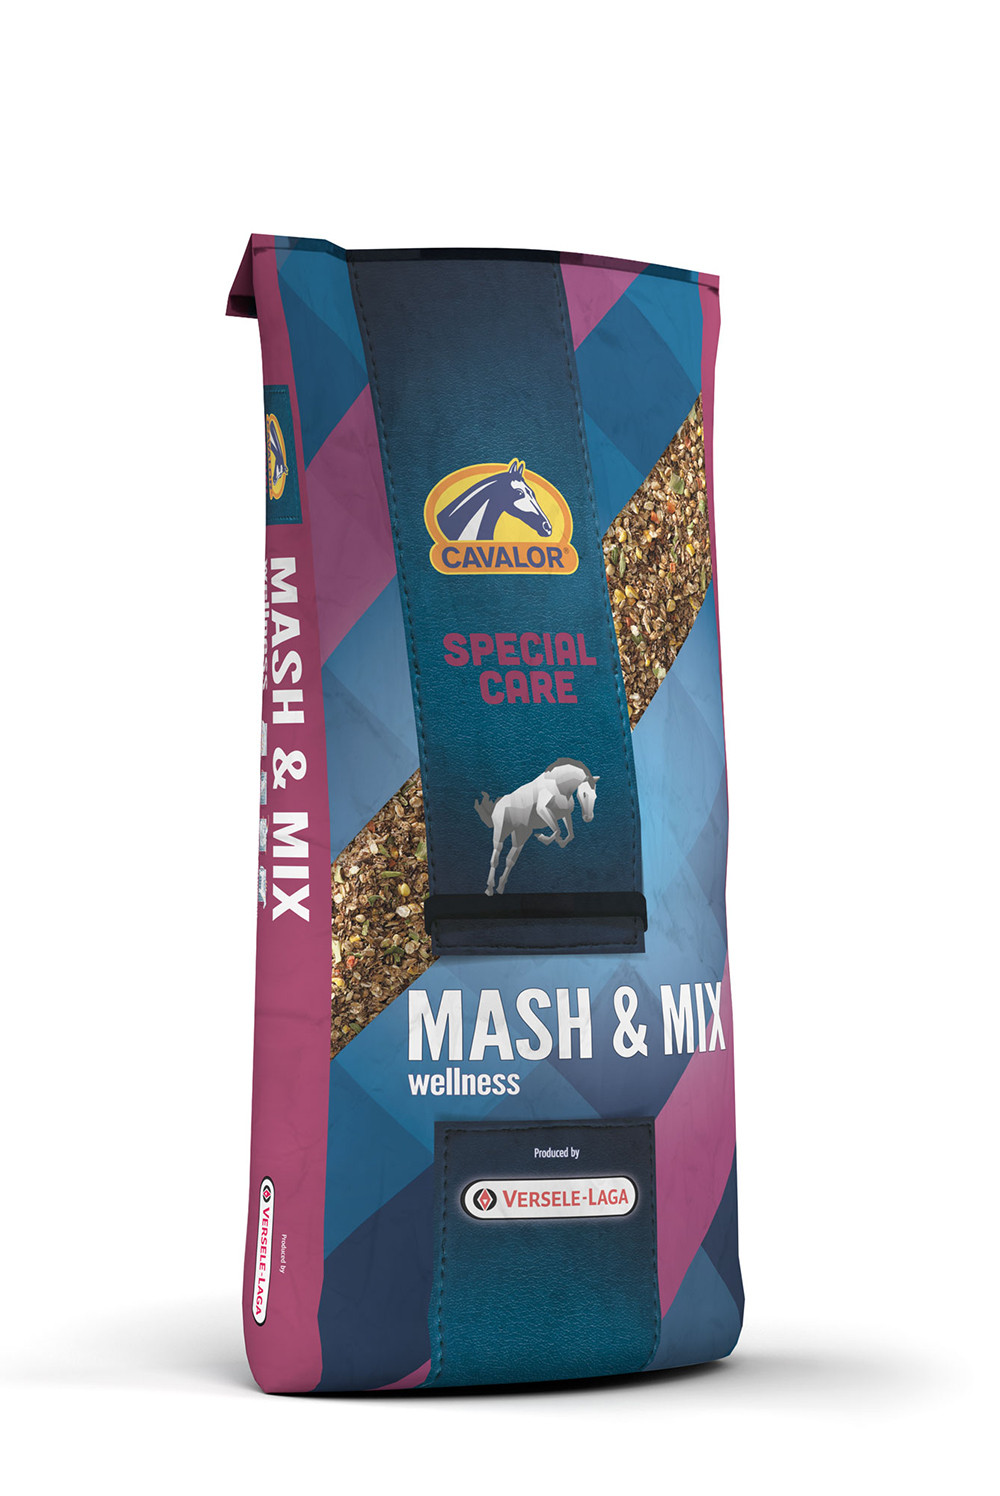 Cavalor Special Care Mash & Mix 15 kg